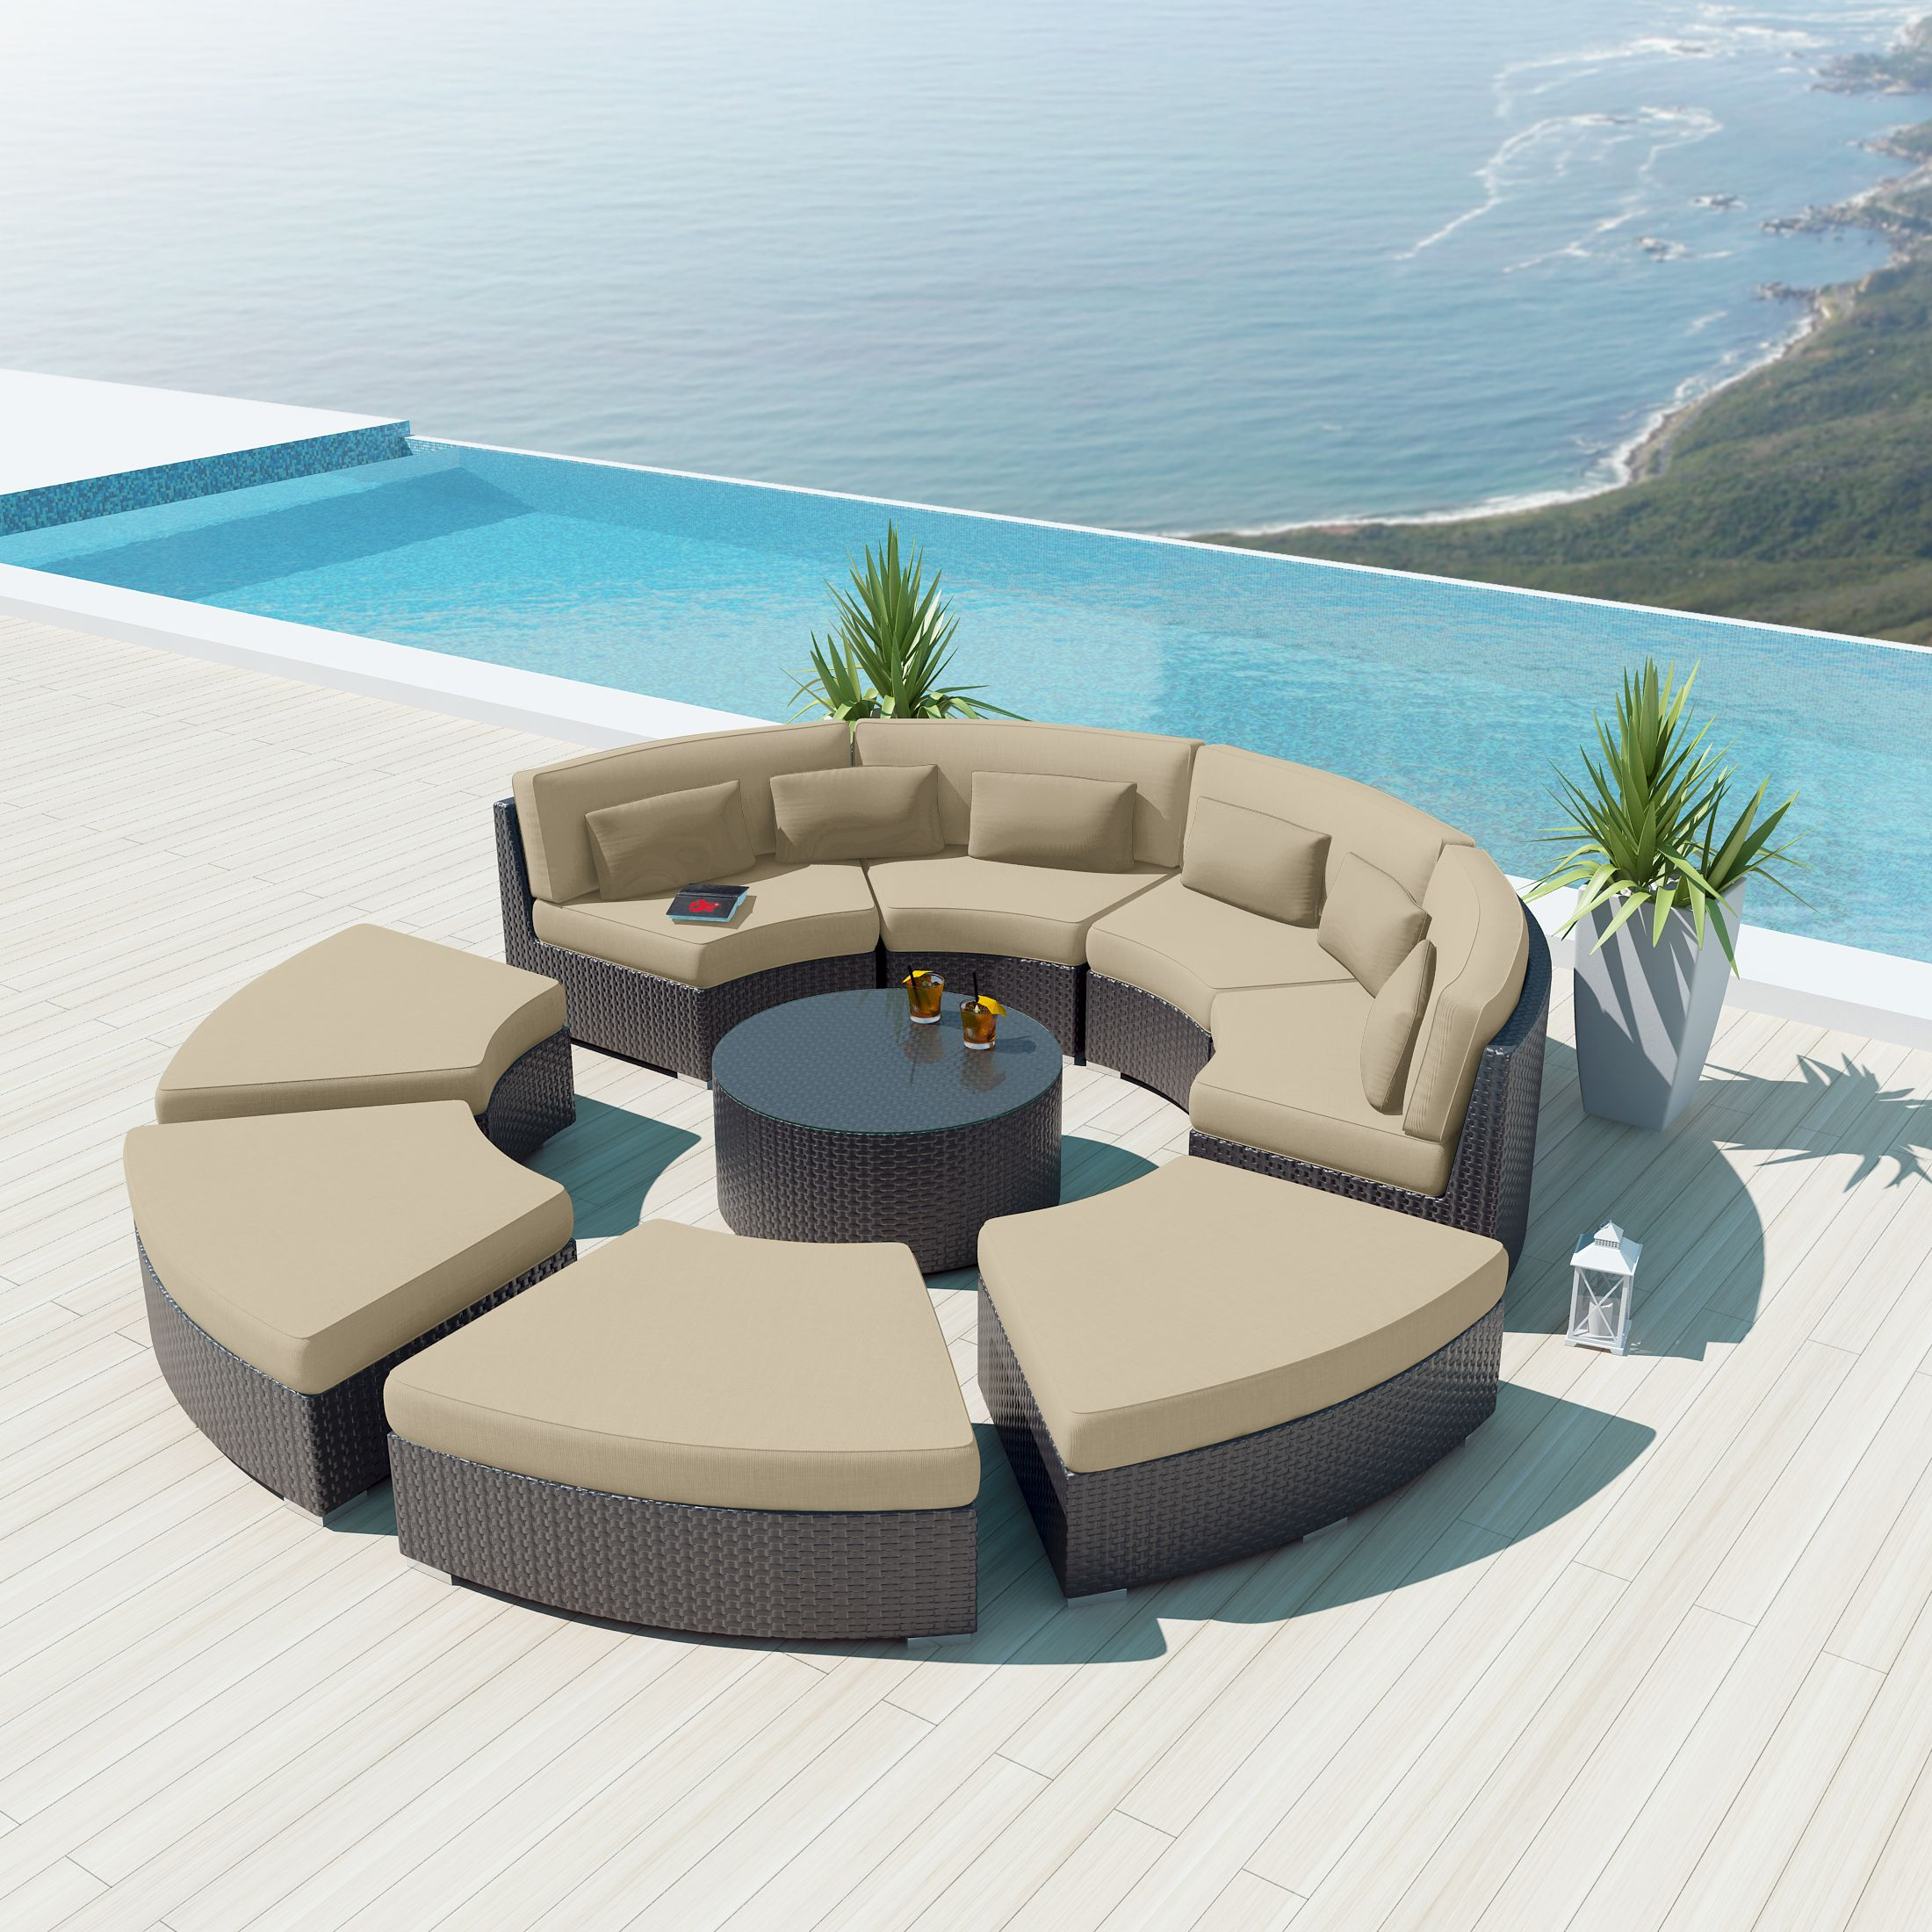 Uduka Modavi 9 pcs Outdoor Sectional Round Patio Sofa Set